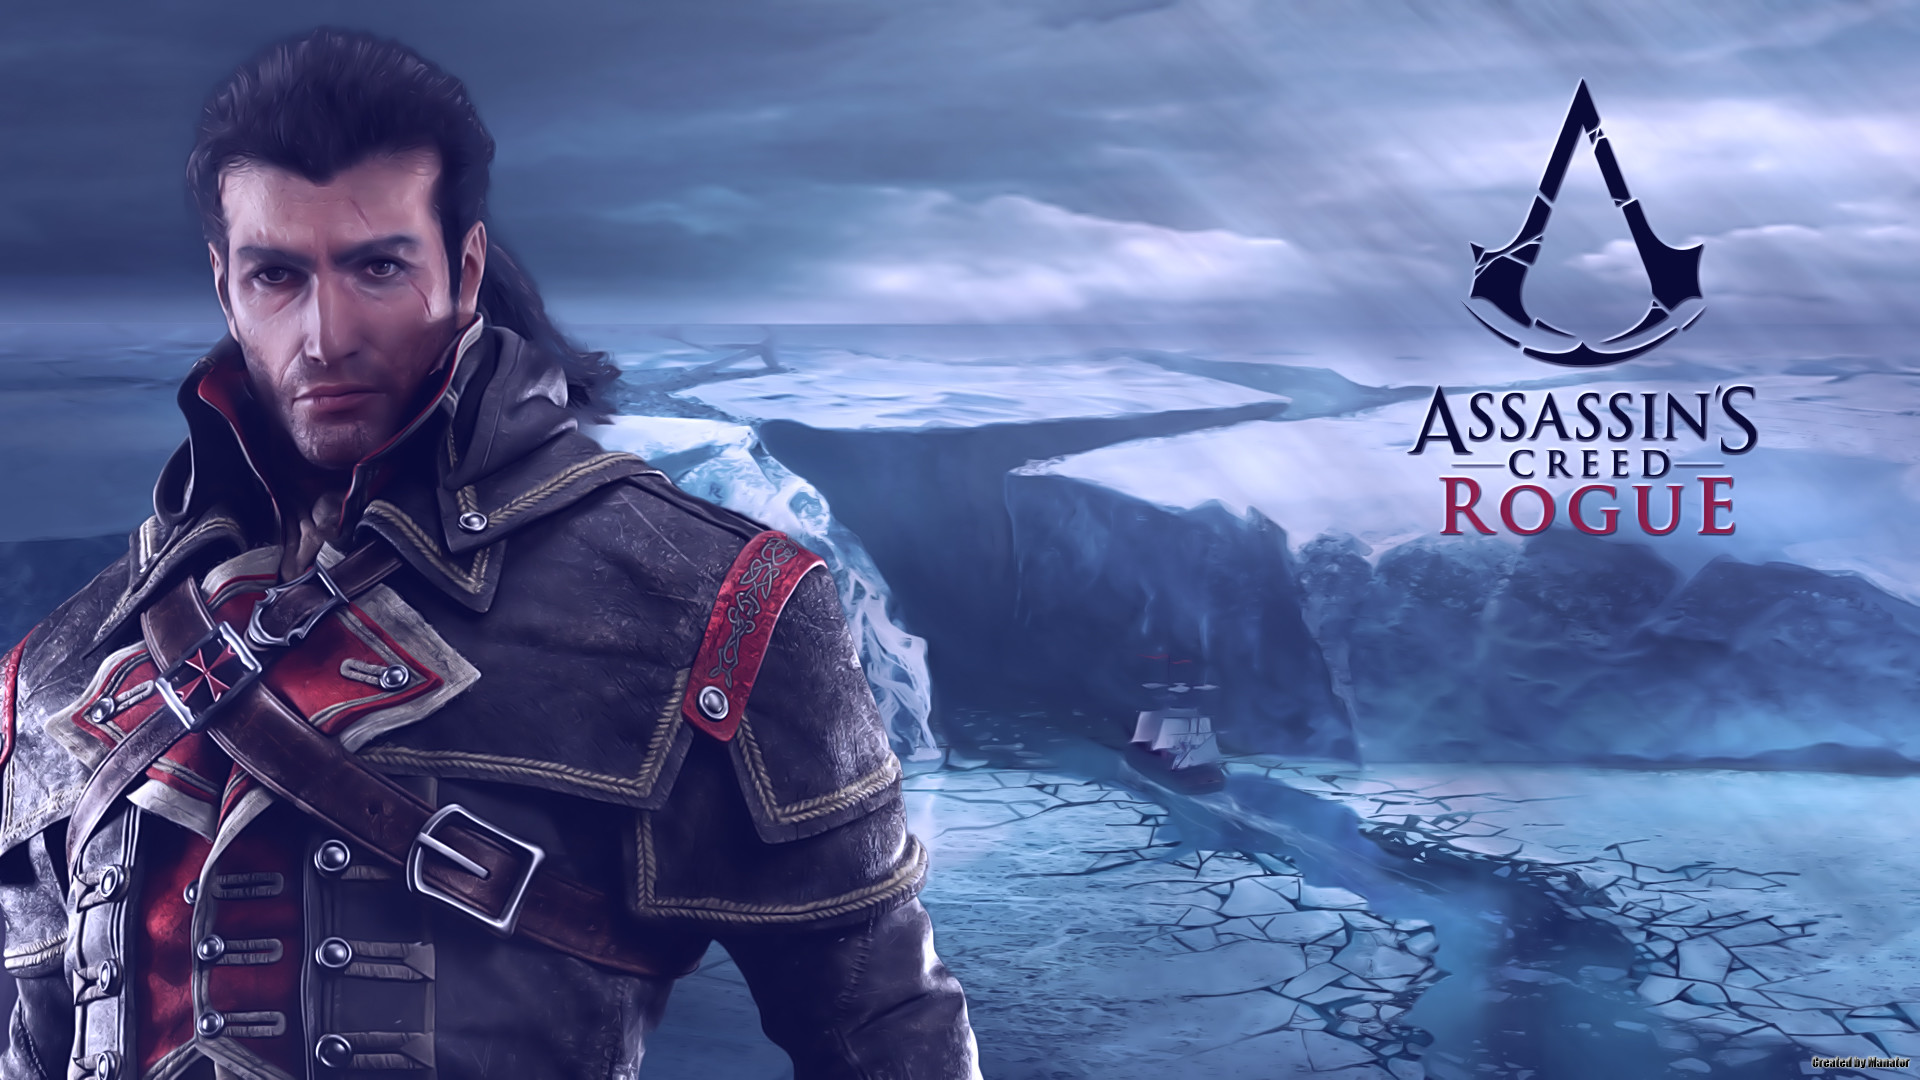 1920x1080 Wallpaper from Assassin's Creed: Rogue